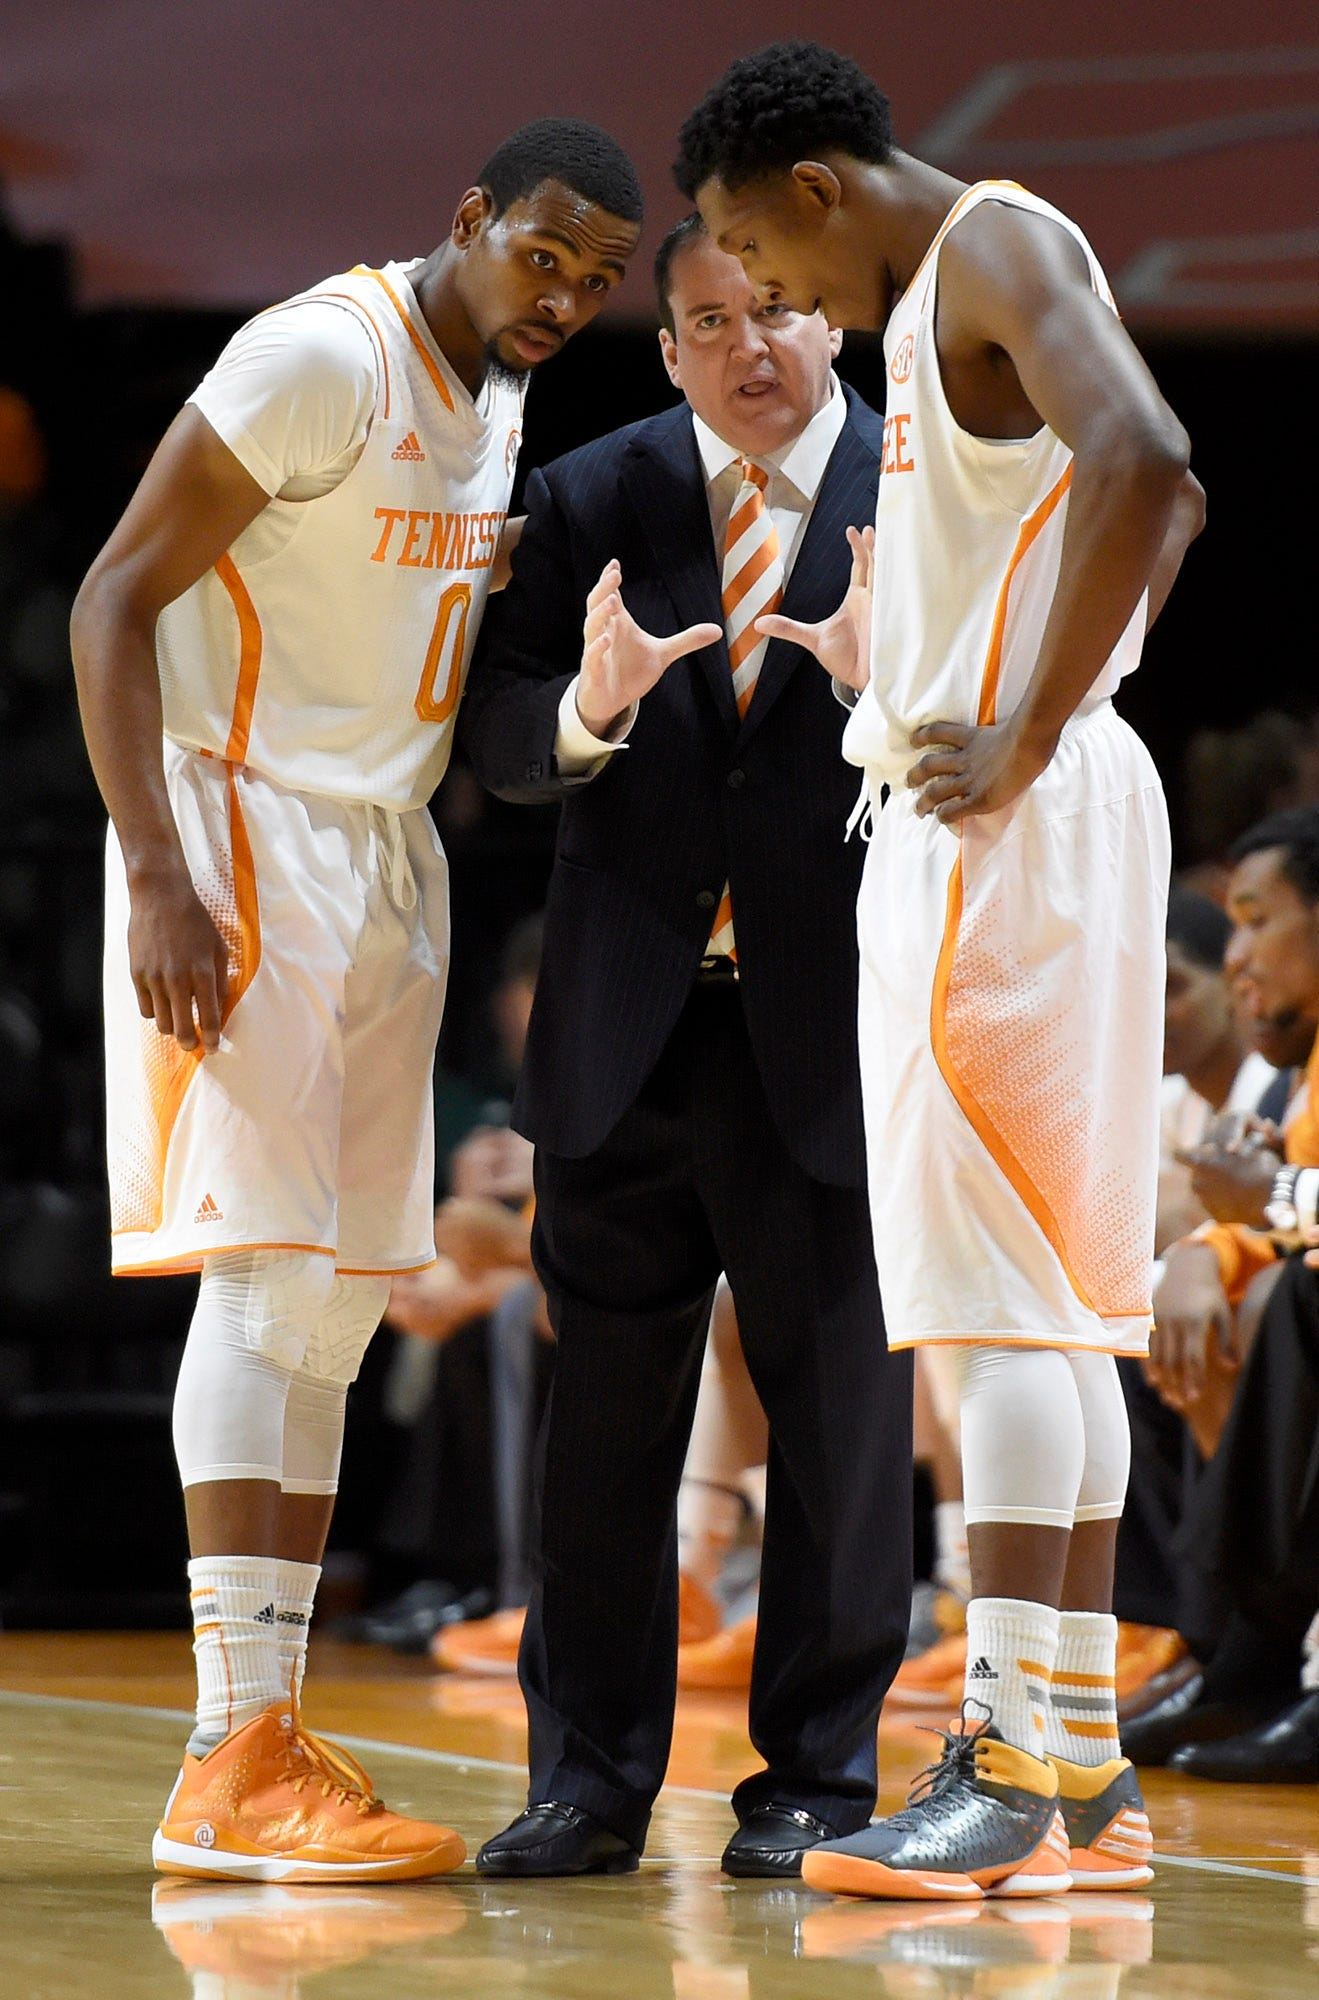 Donnie Tyndall spent one year as Tennessee's basketball coach in 2014-15. The Vols finished 16-16 under his watch, with help from standout guards Kevin Punter, left, and Josh Richardson.